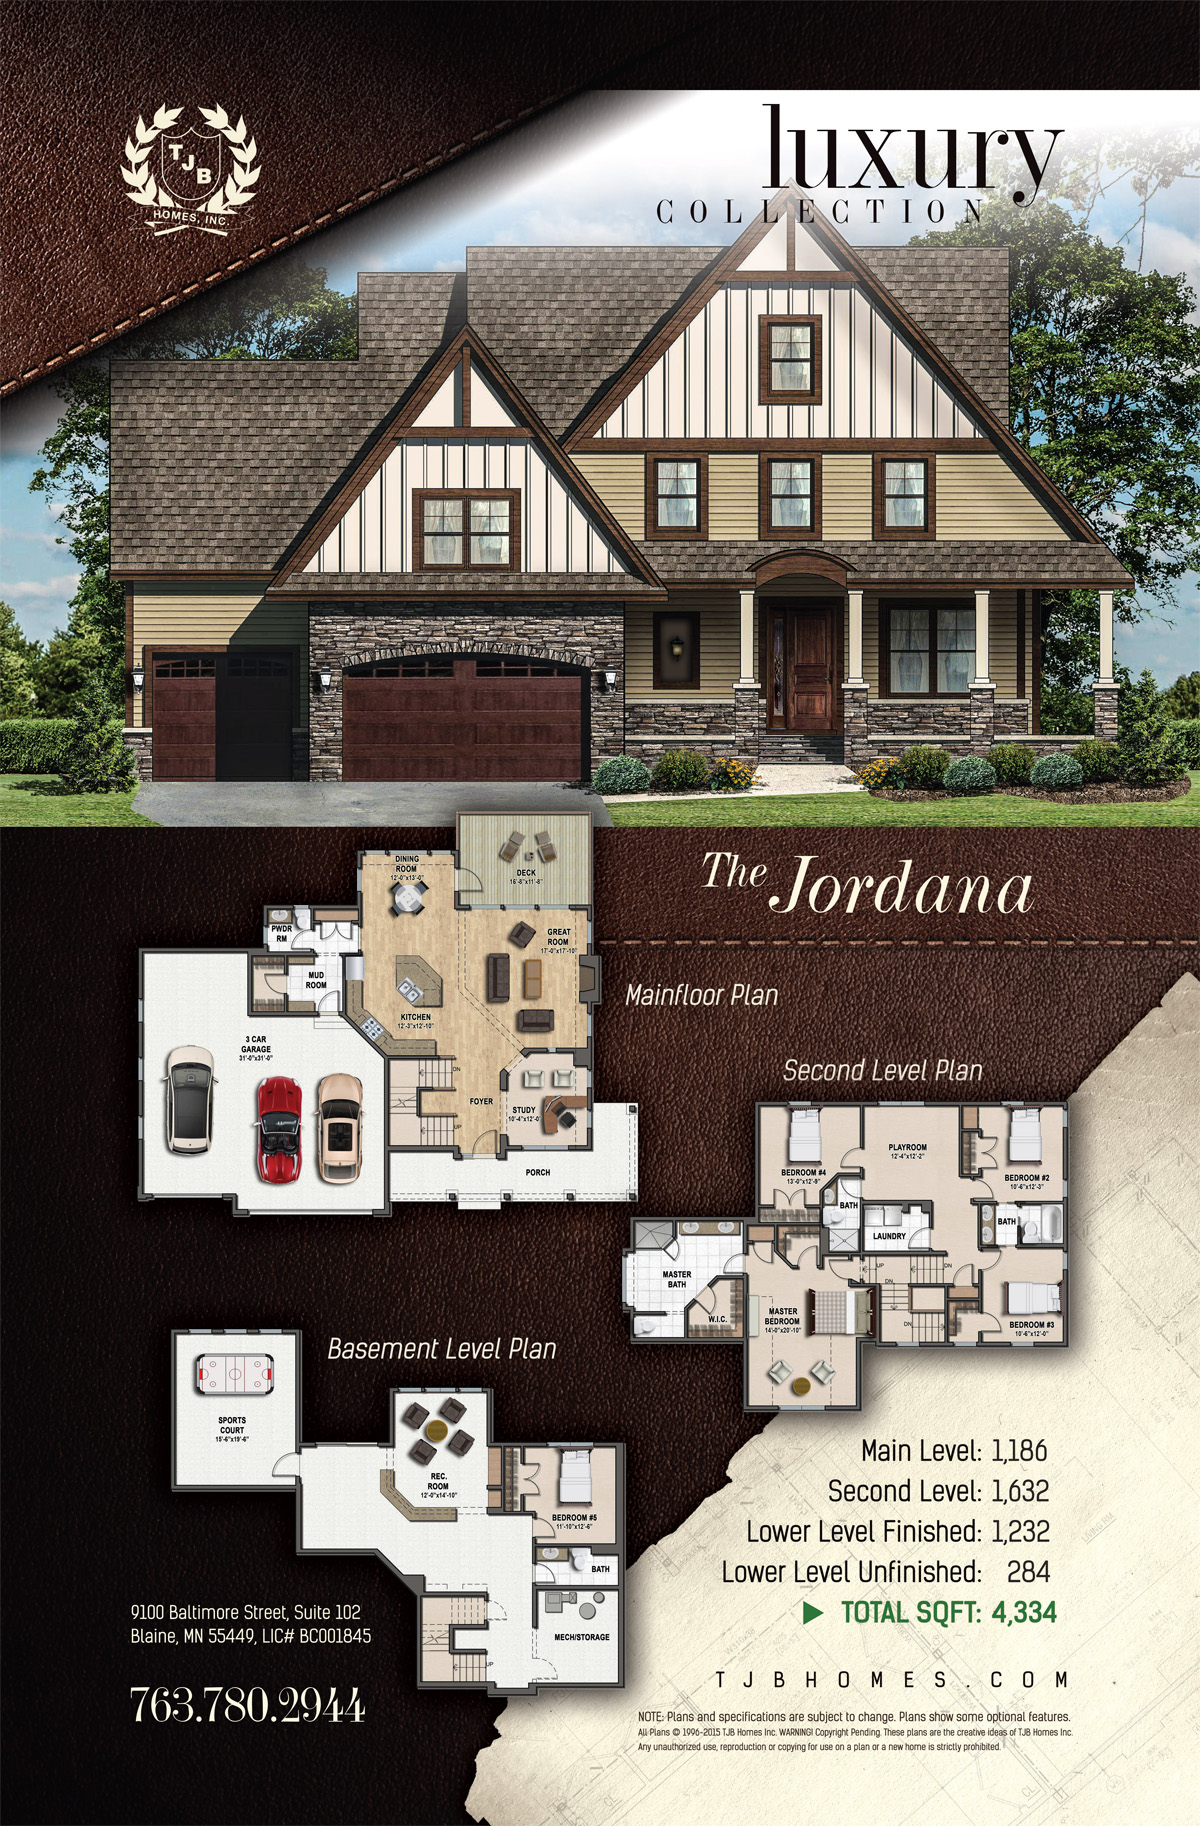 Luxury Collection Home Plans - The Jordana